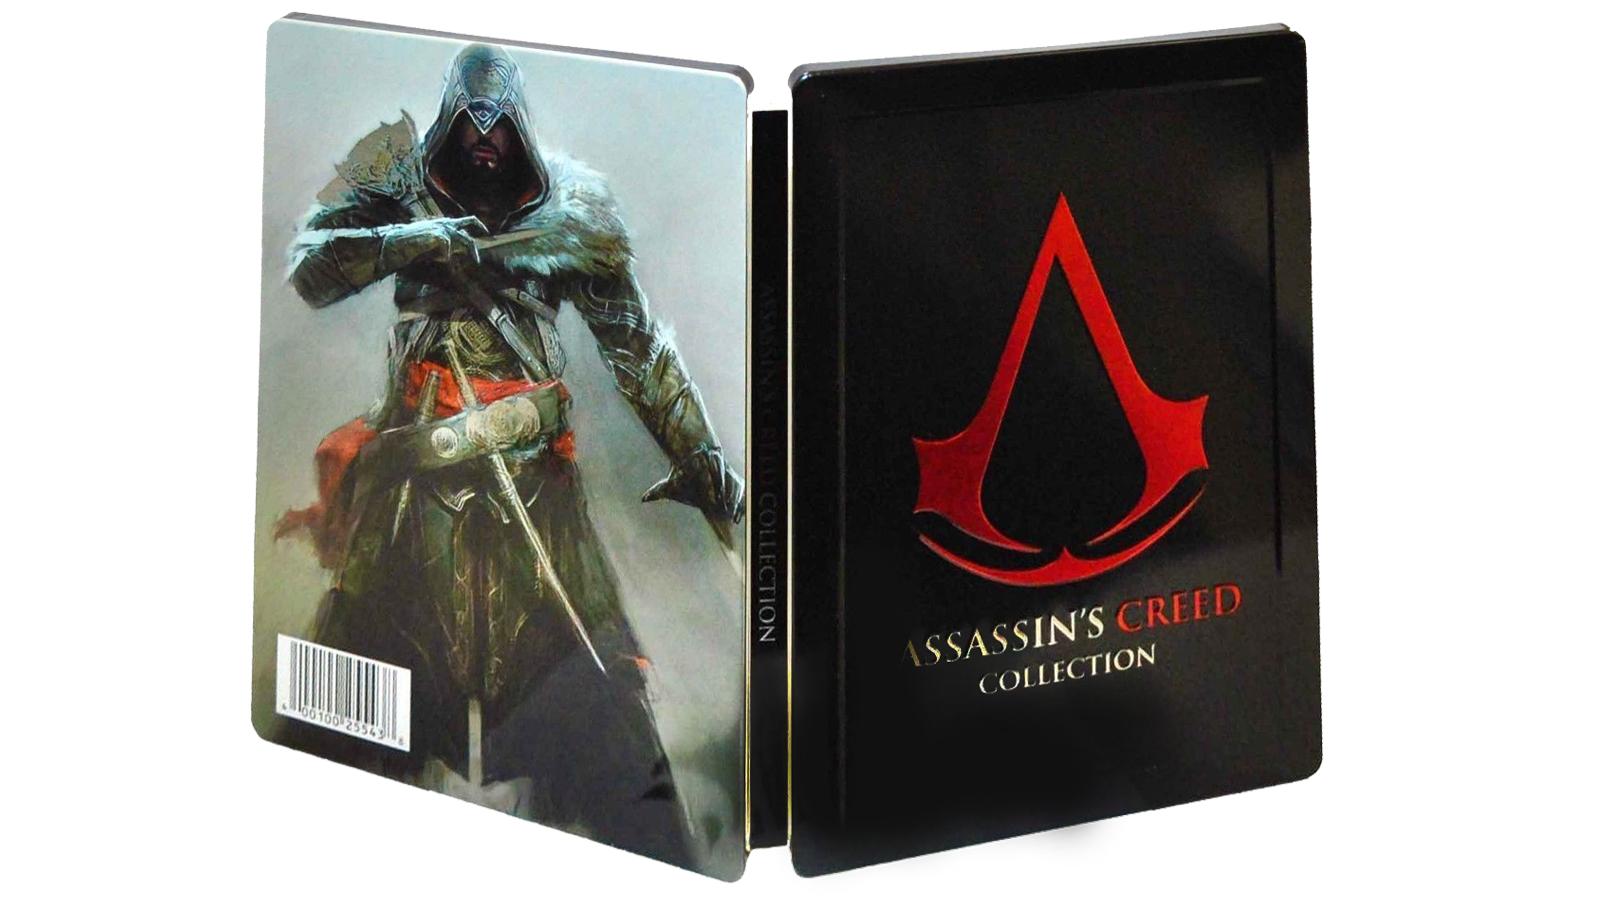 Assassin's Creed Collection Steelbook